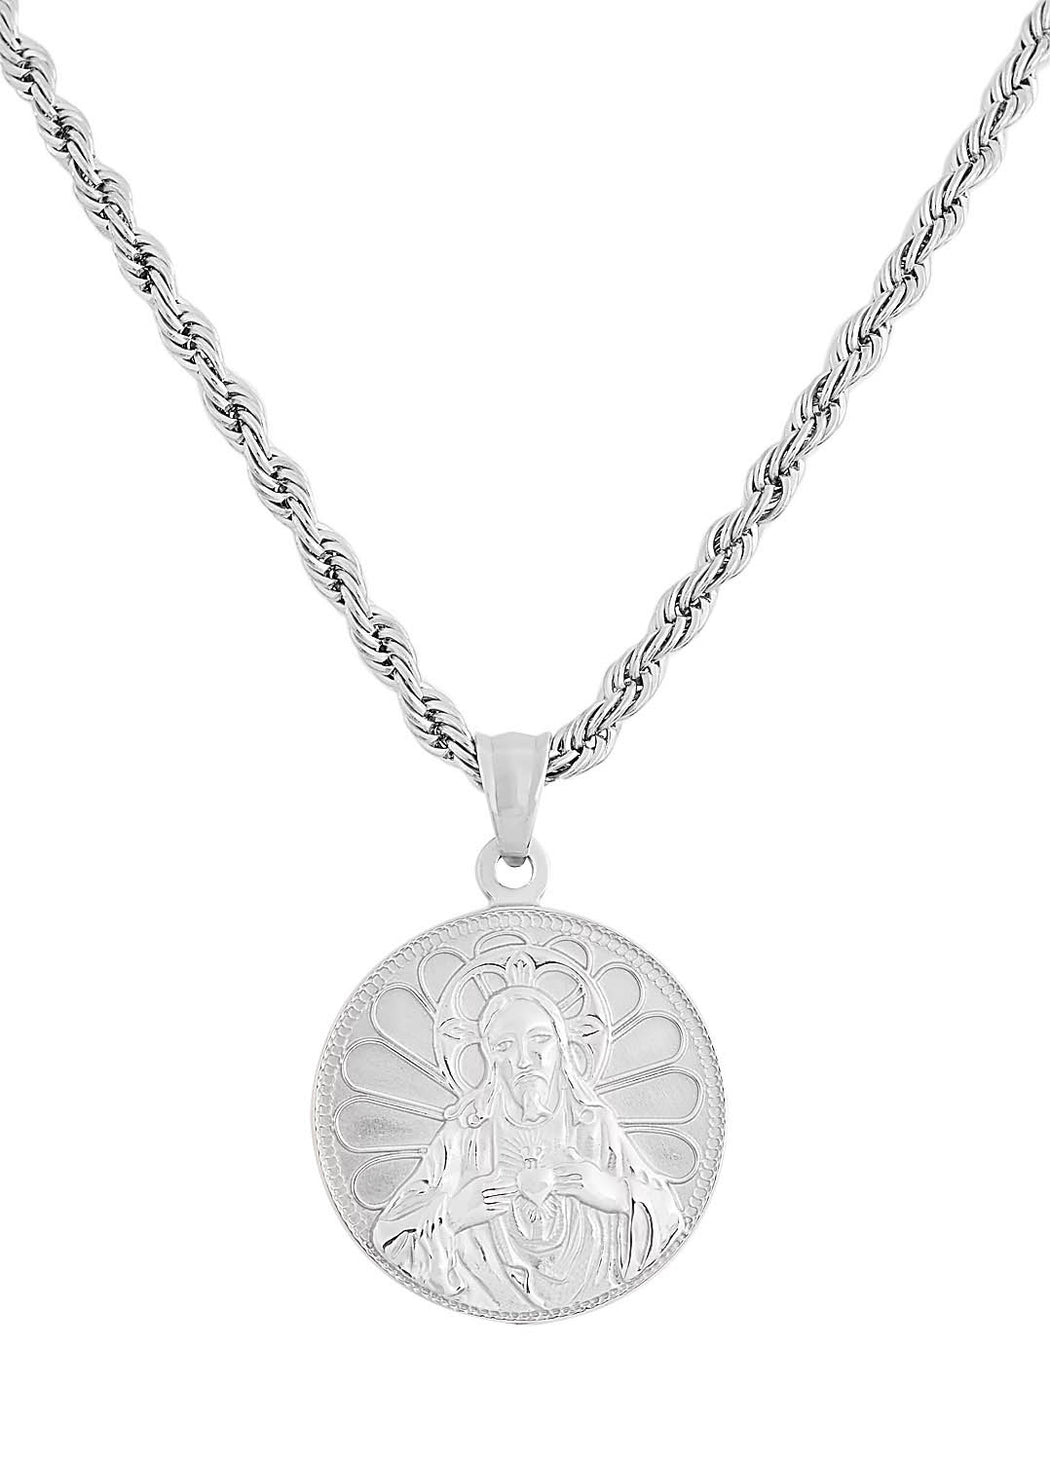 Silver Praying Jesus Necklace